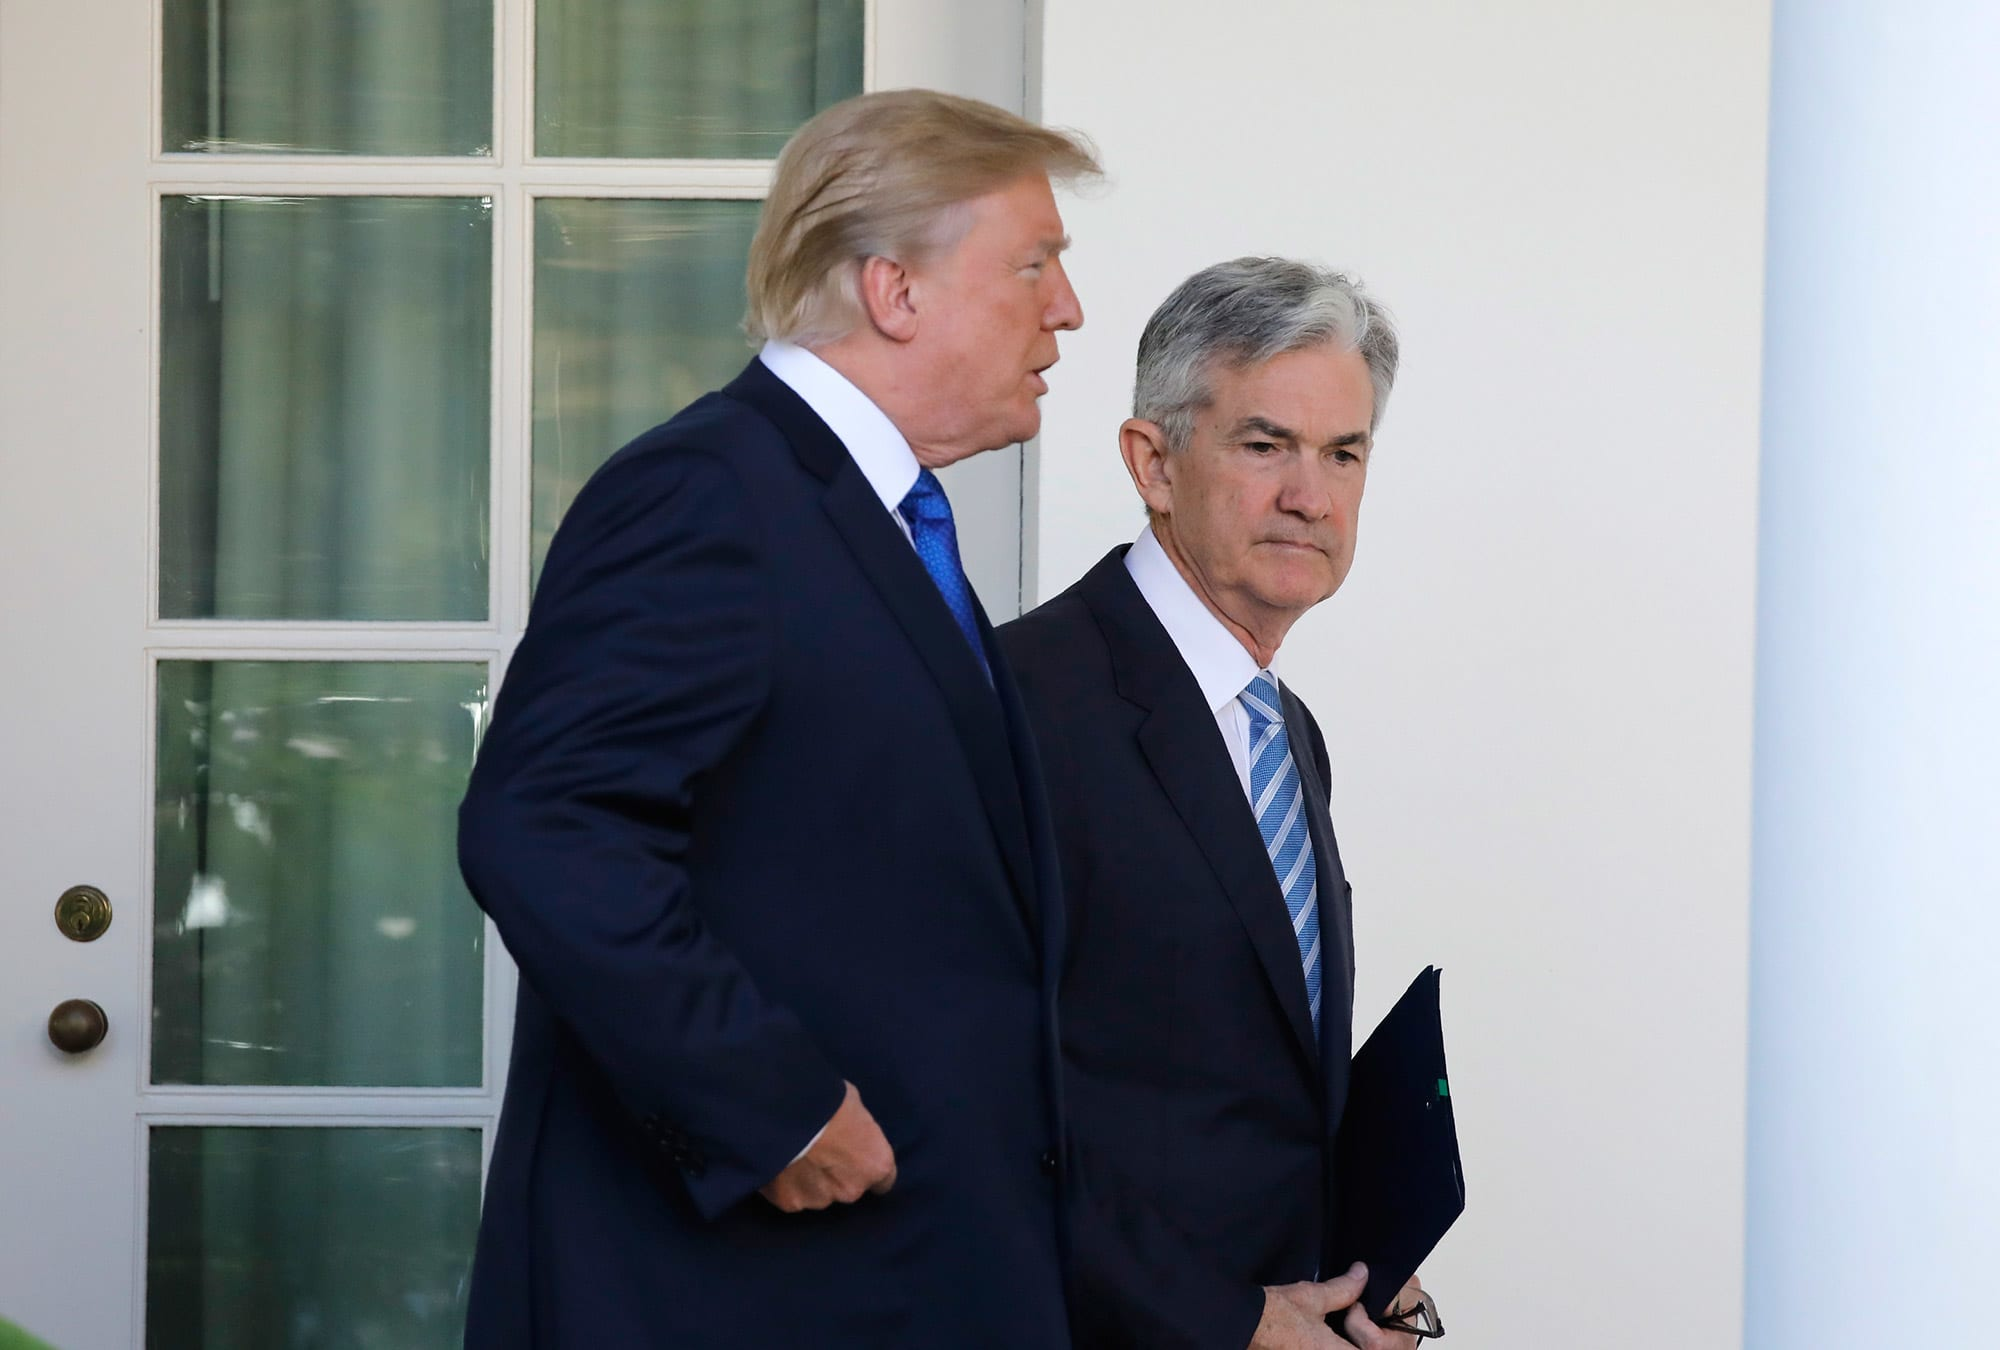 Trump says 'devalued' currencies put US at a disadvantage and the Fed doesn't have a 'clue'